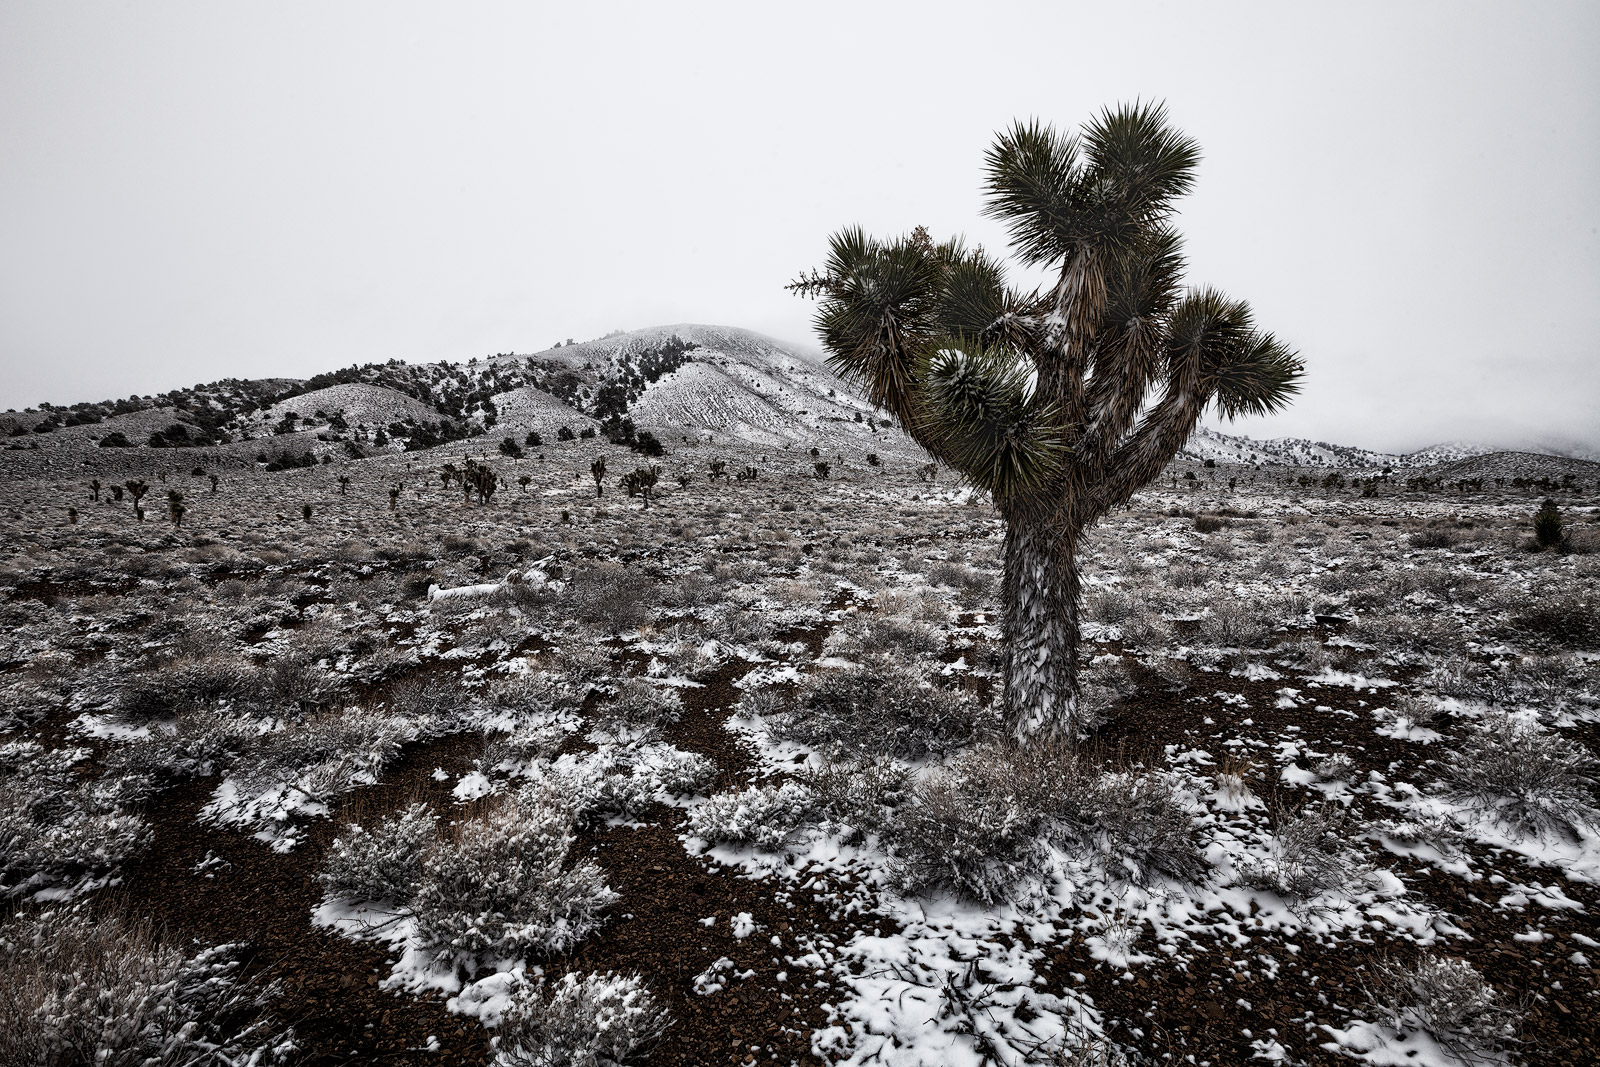 america,cactus,california,death valley,death valley national park,inyo forest,inyo national forest,joshua tree,north america,snow,united states,us,usa,west, photo